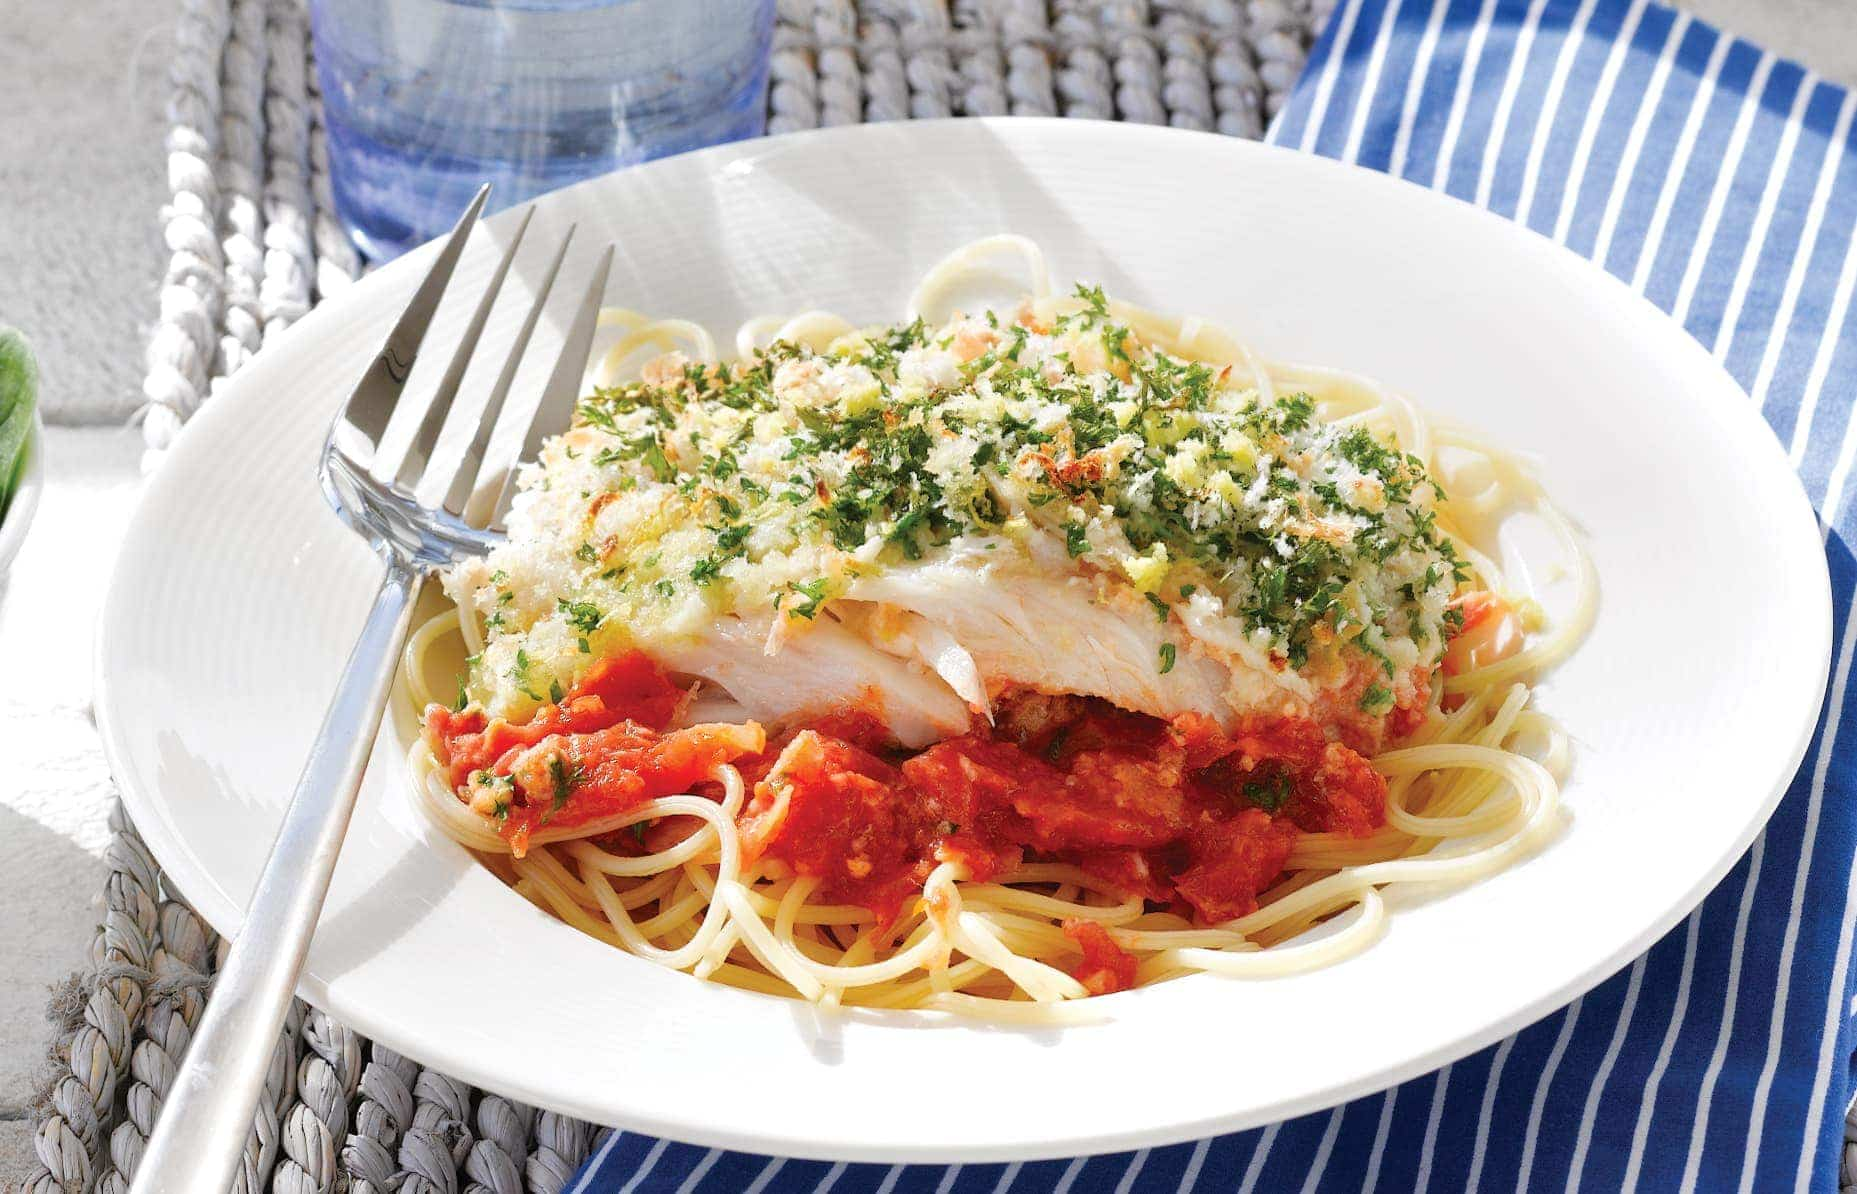 Greek-style baked fish